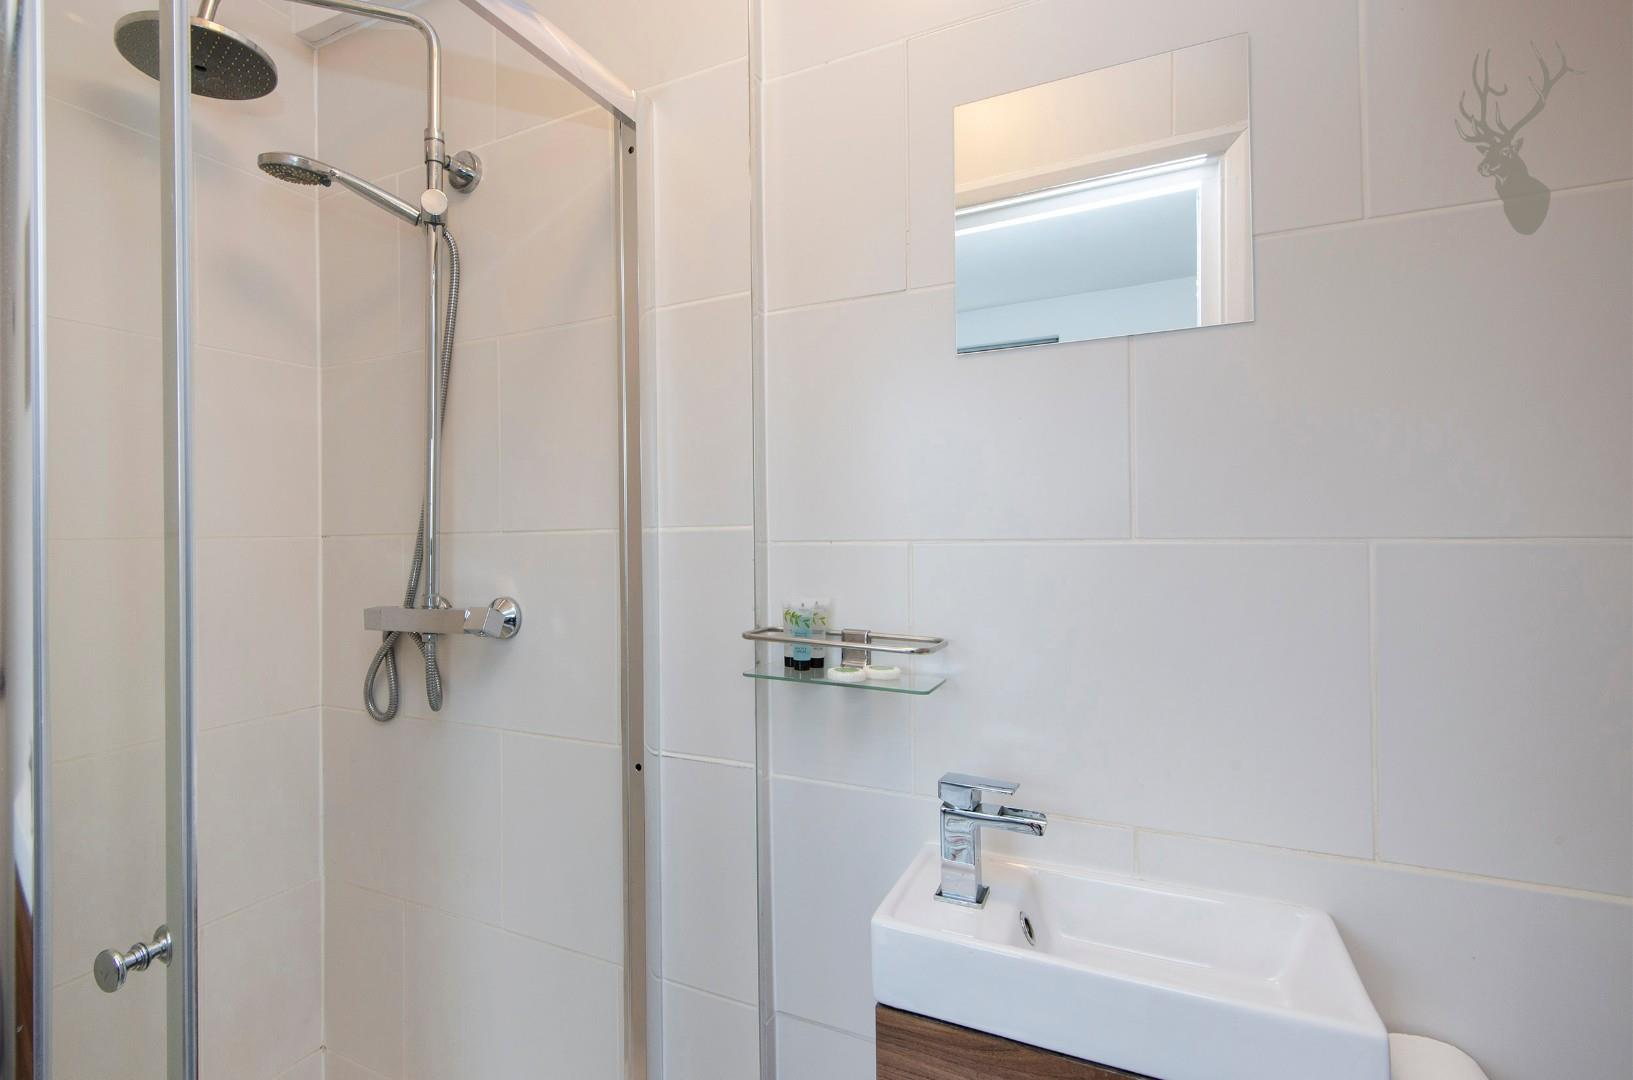 Flat 6, 586 Kingsland Road E8 SHOWER img 2.jpg